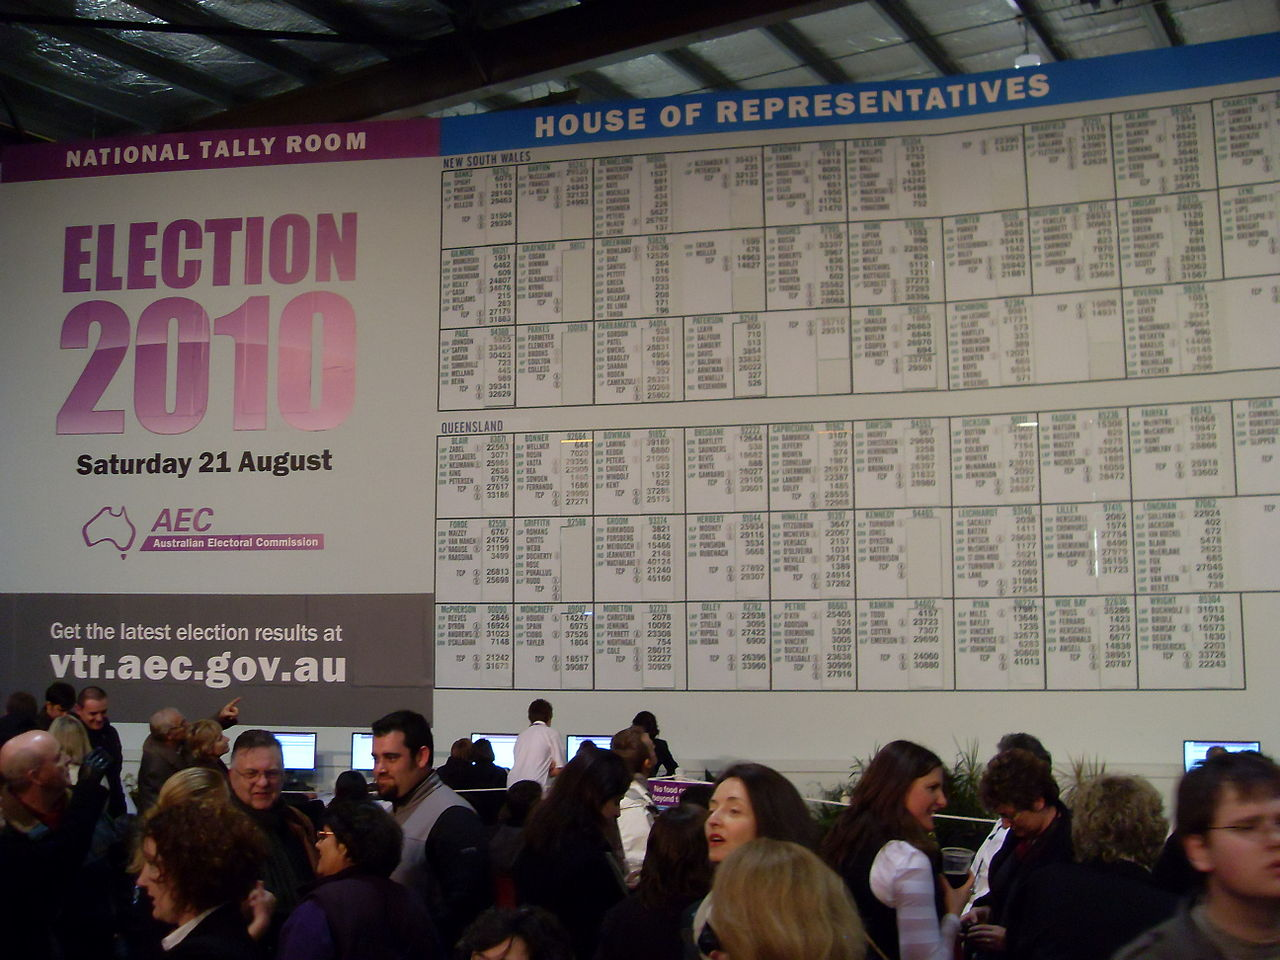 National Tally Room 2010 board, Australia